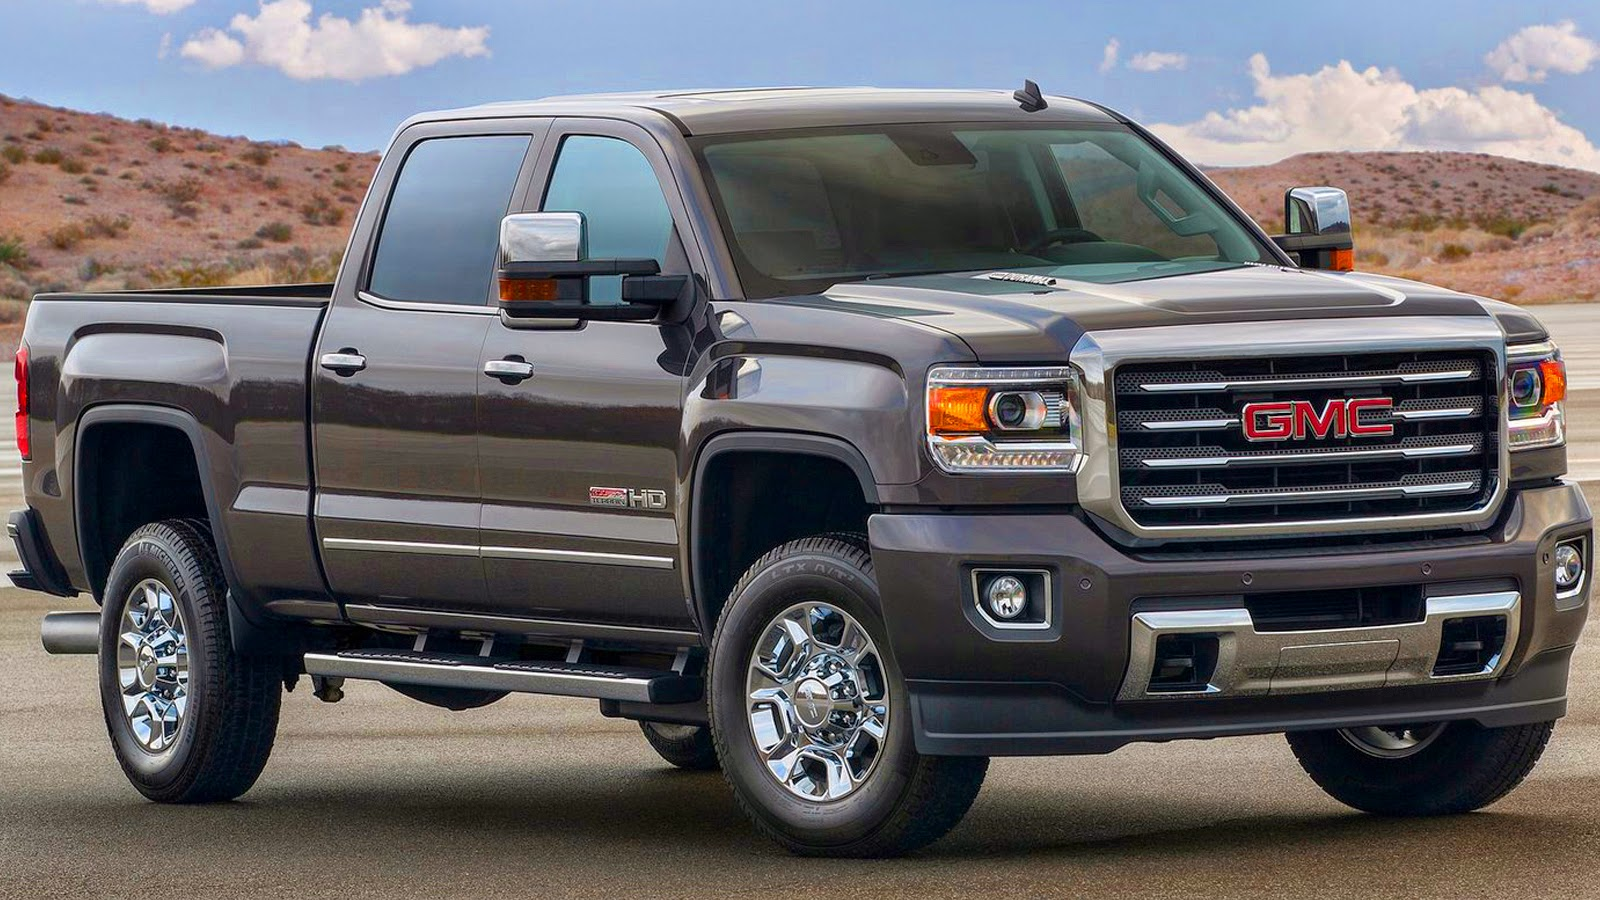 2015 GMC Sierra All Terrain HD photo - 1